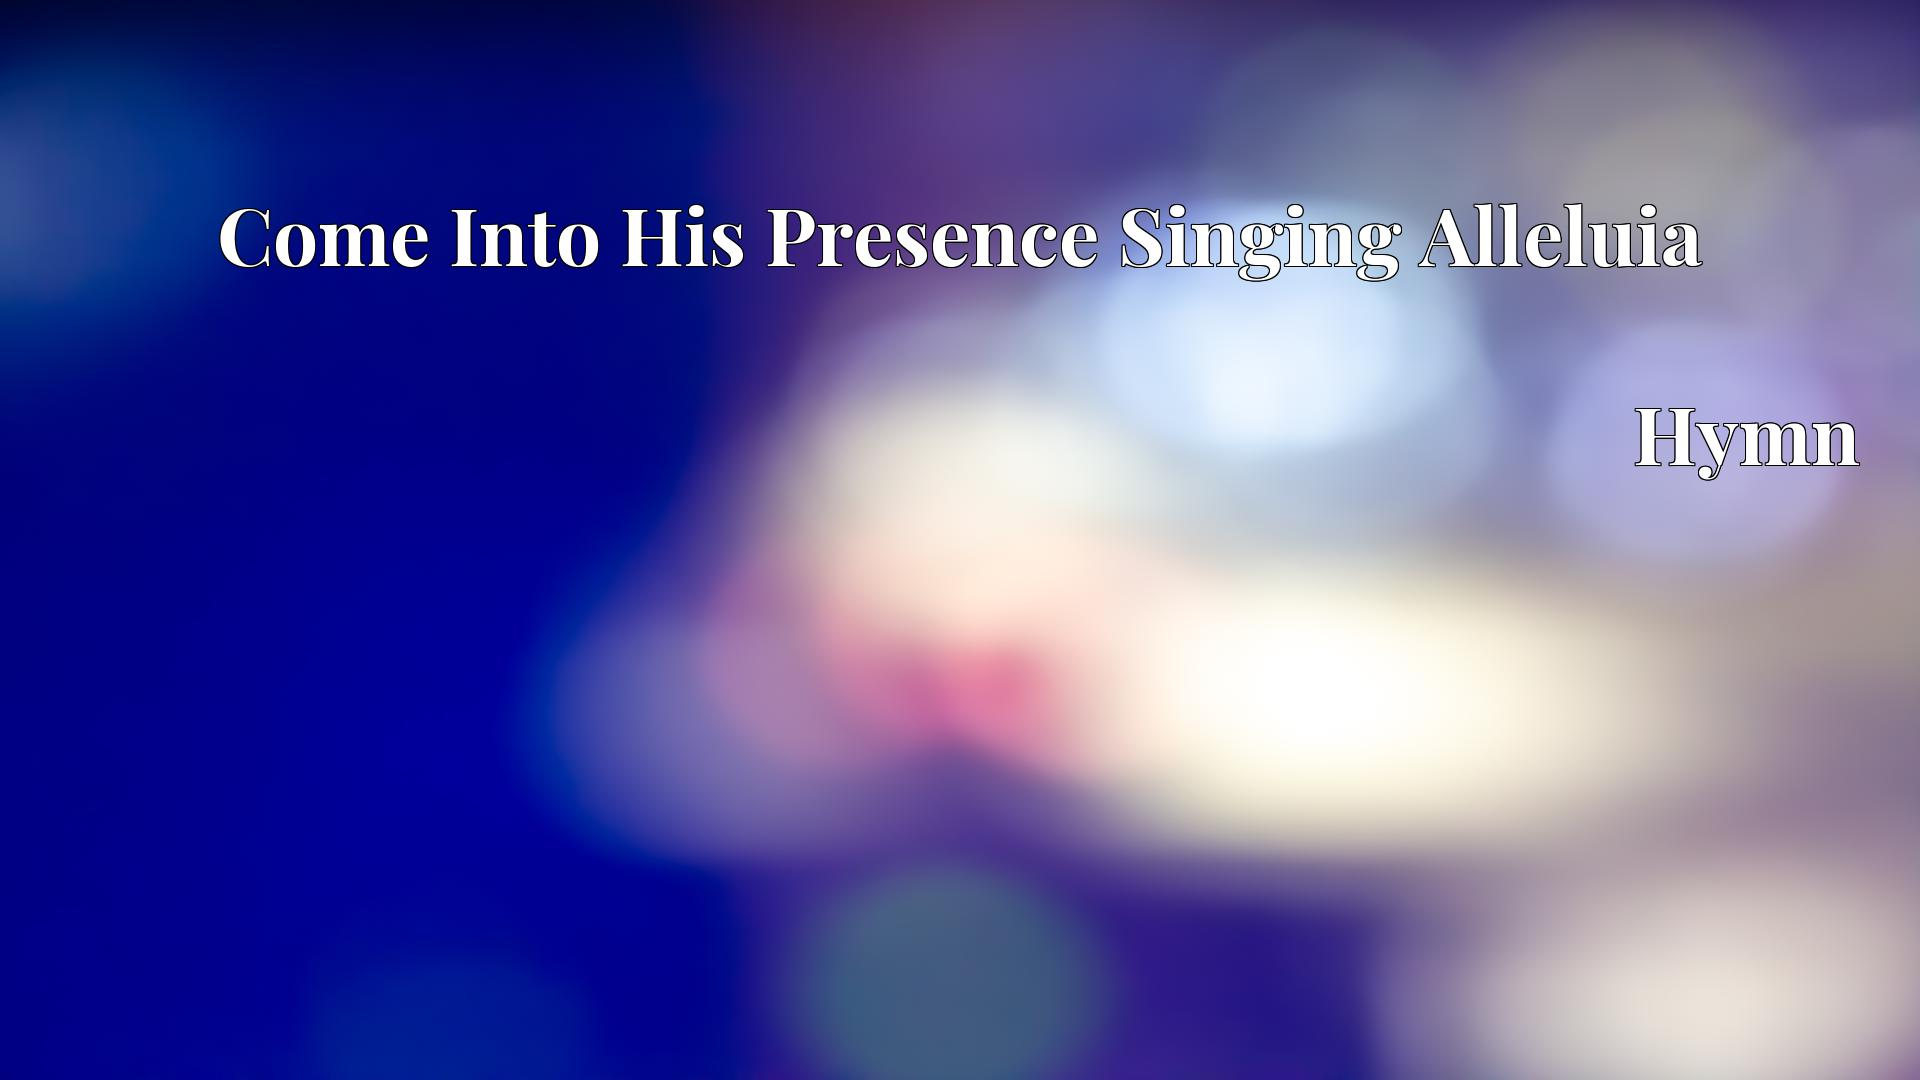 Come Into His Presence Singing Alleluia - Hymn